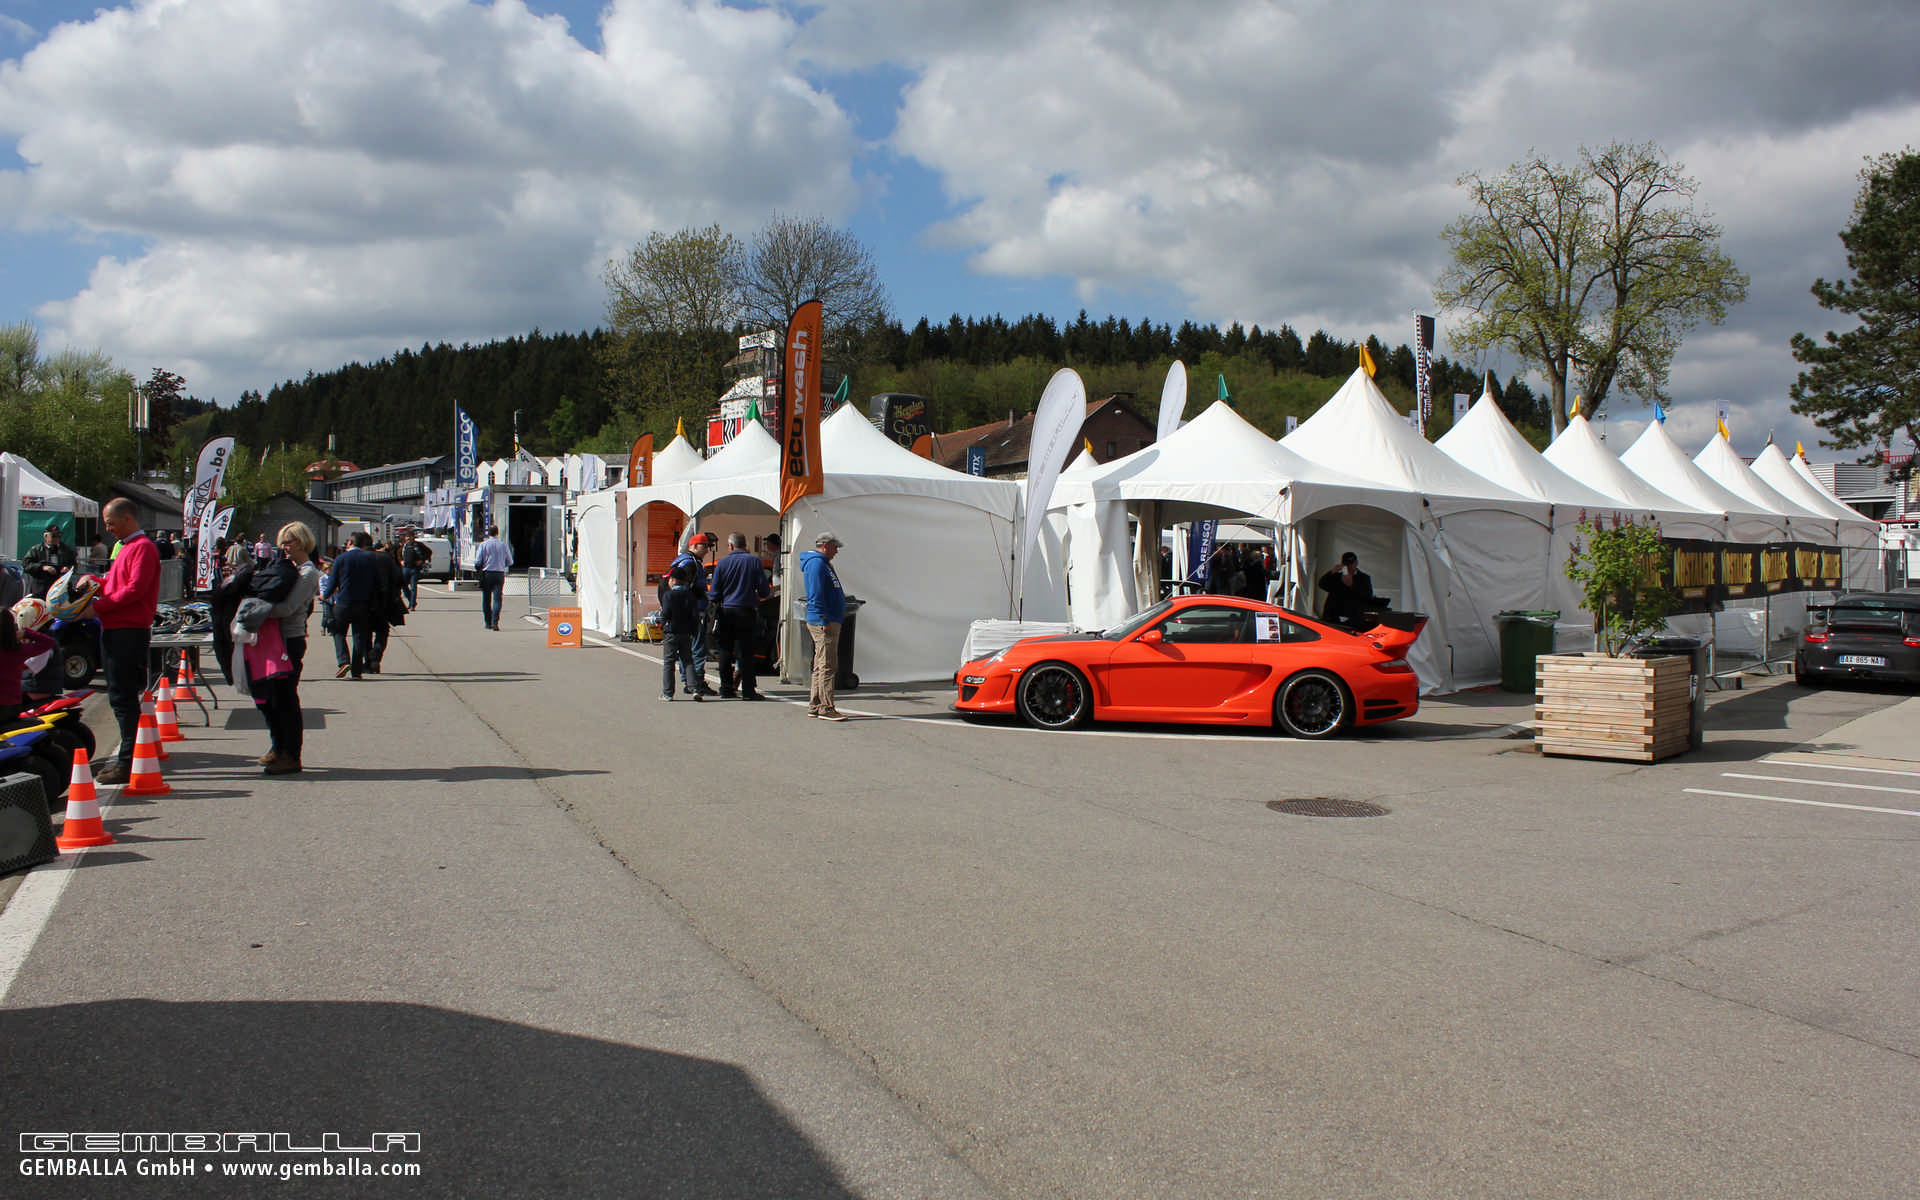 gemballa_gmbh_event_spa_2013_013